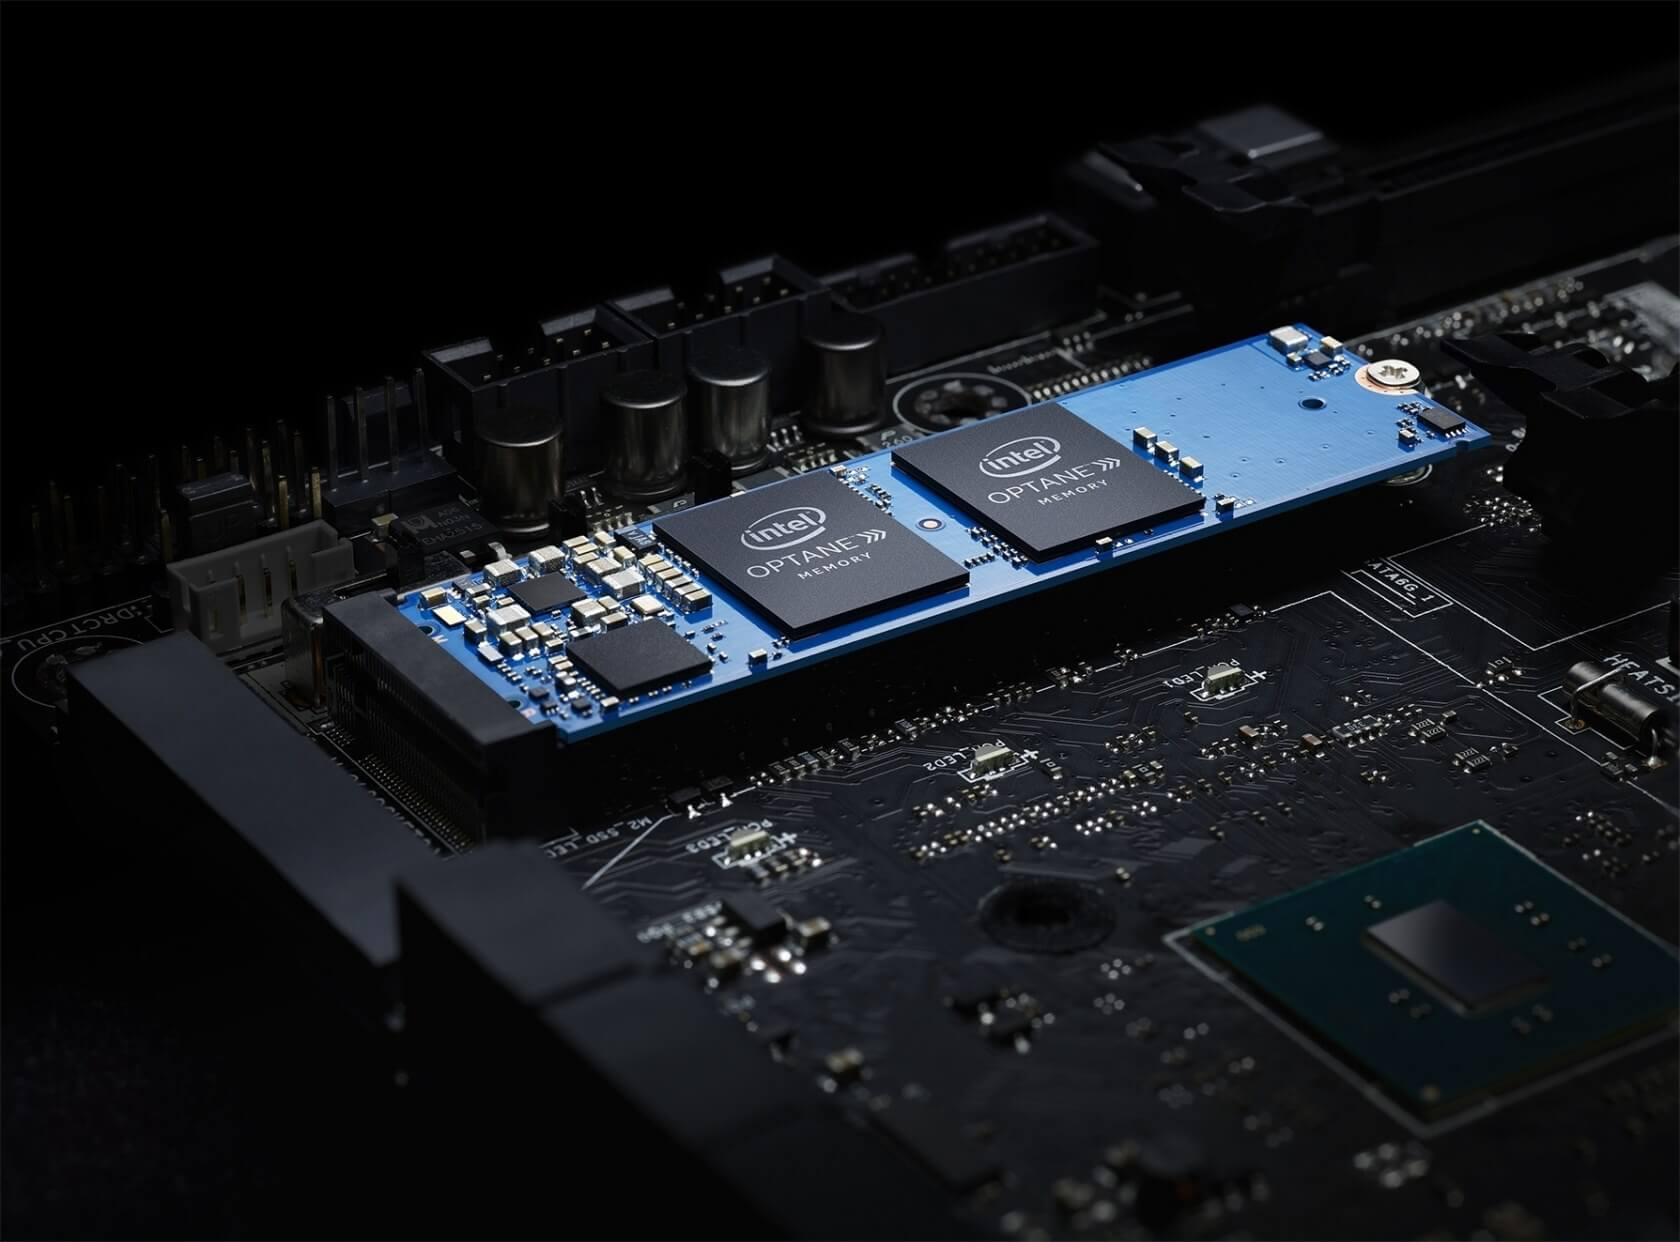 Optane cache drives are not DRAM, but that's not what Intel